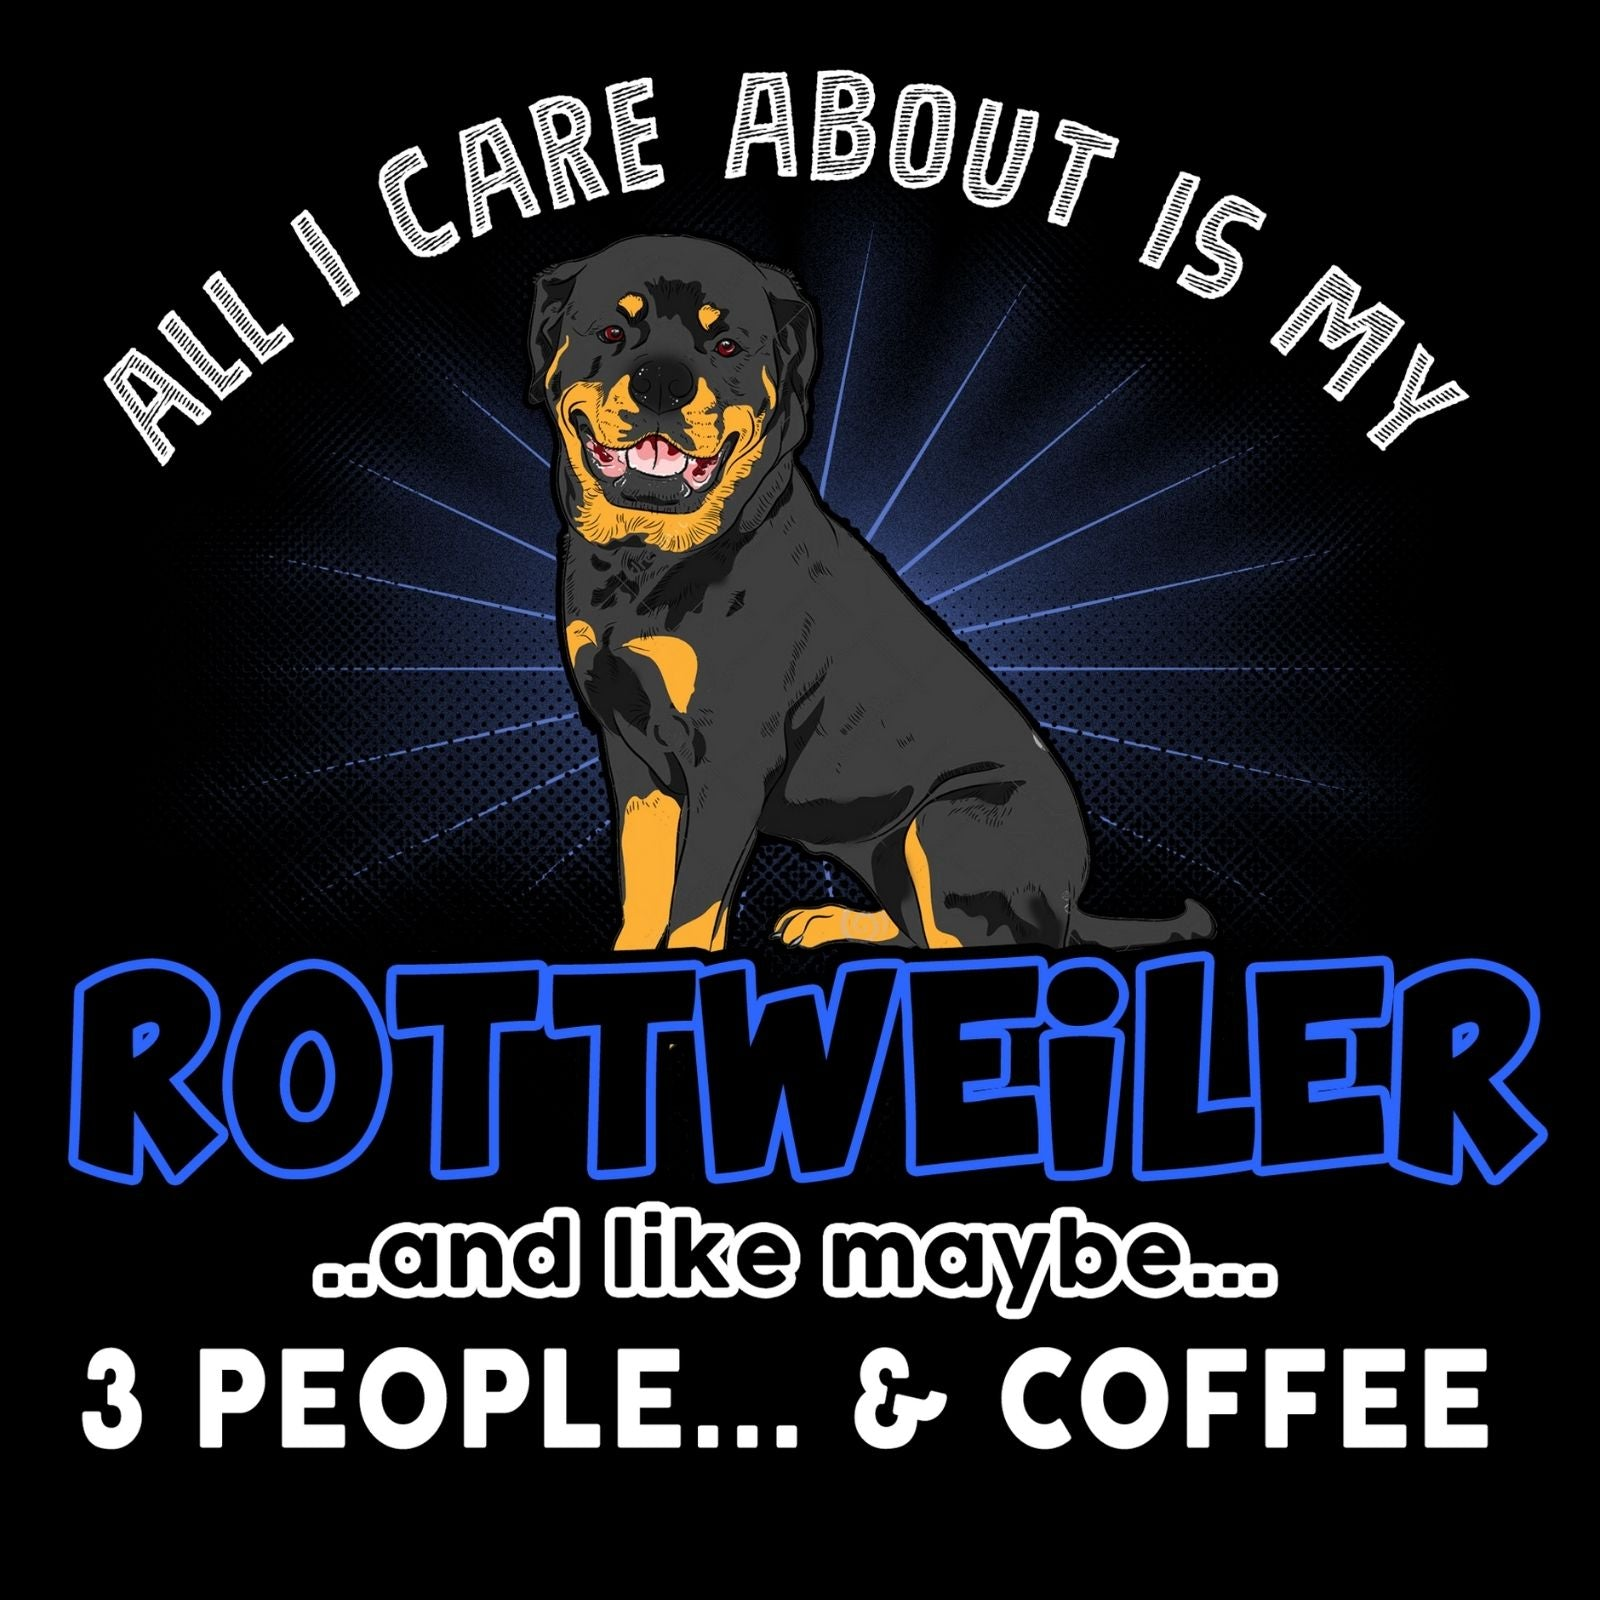 All I Care About Is My Rottweiler - Bastard Graphics